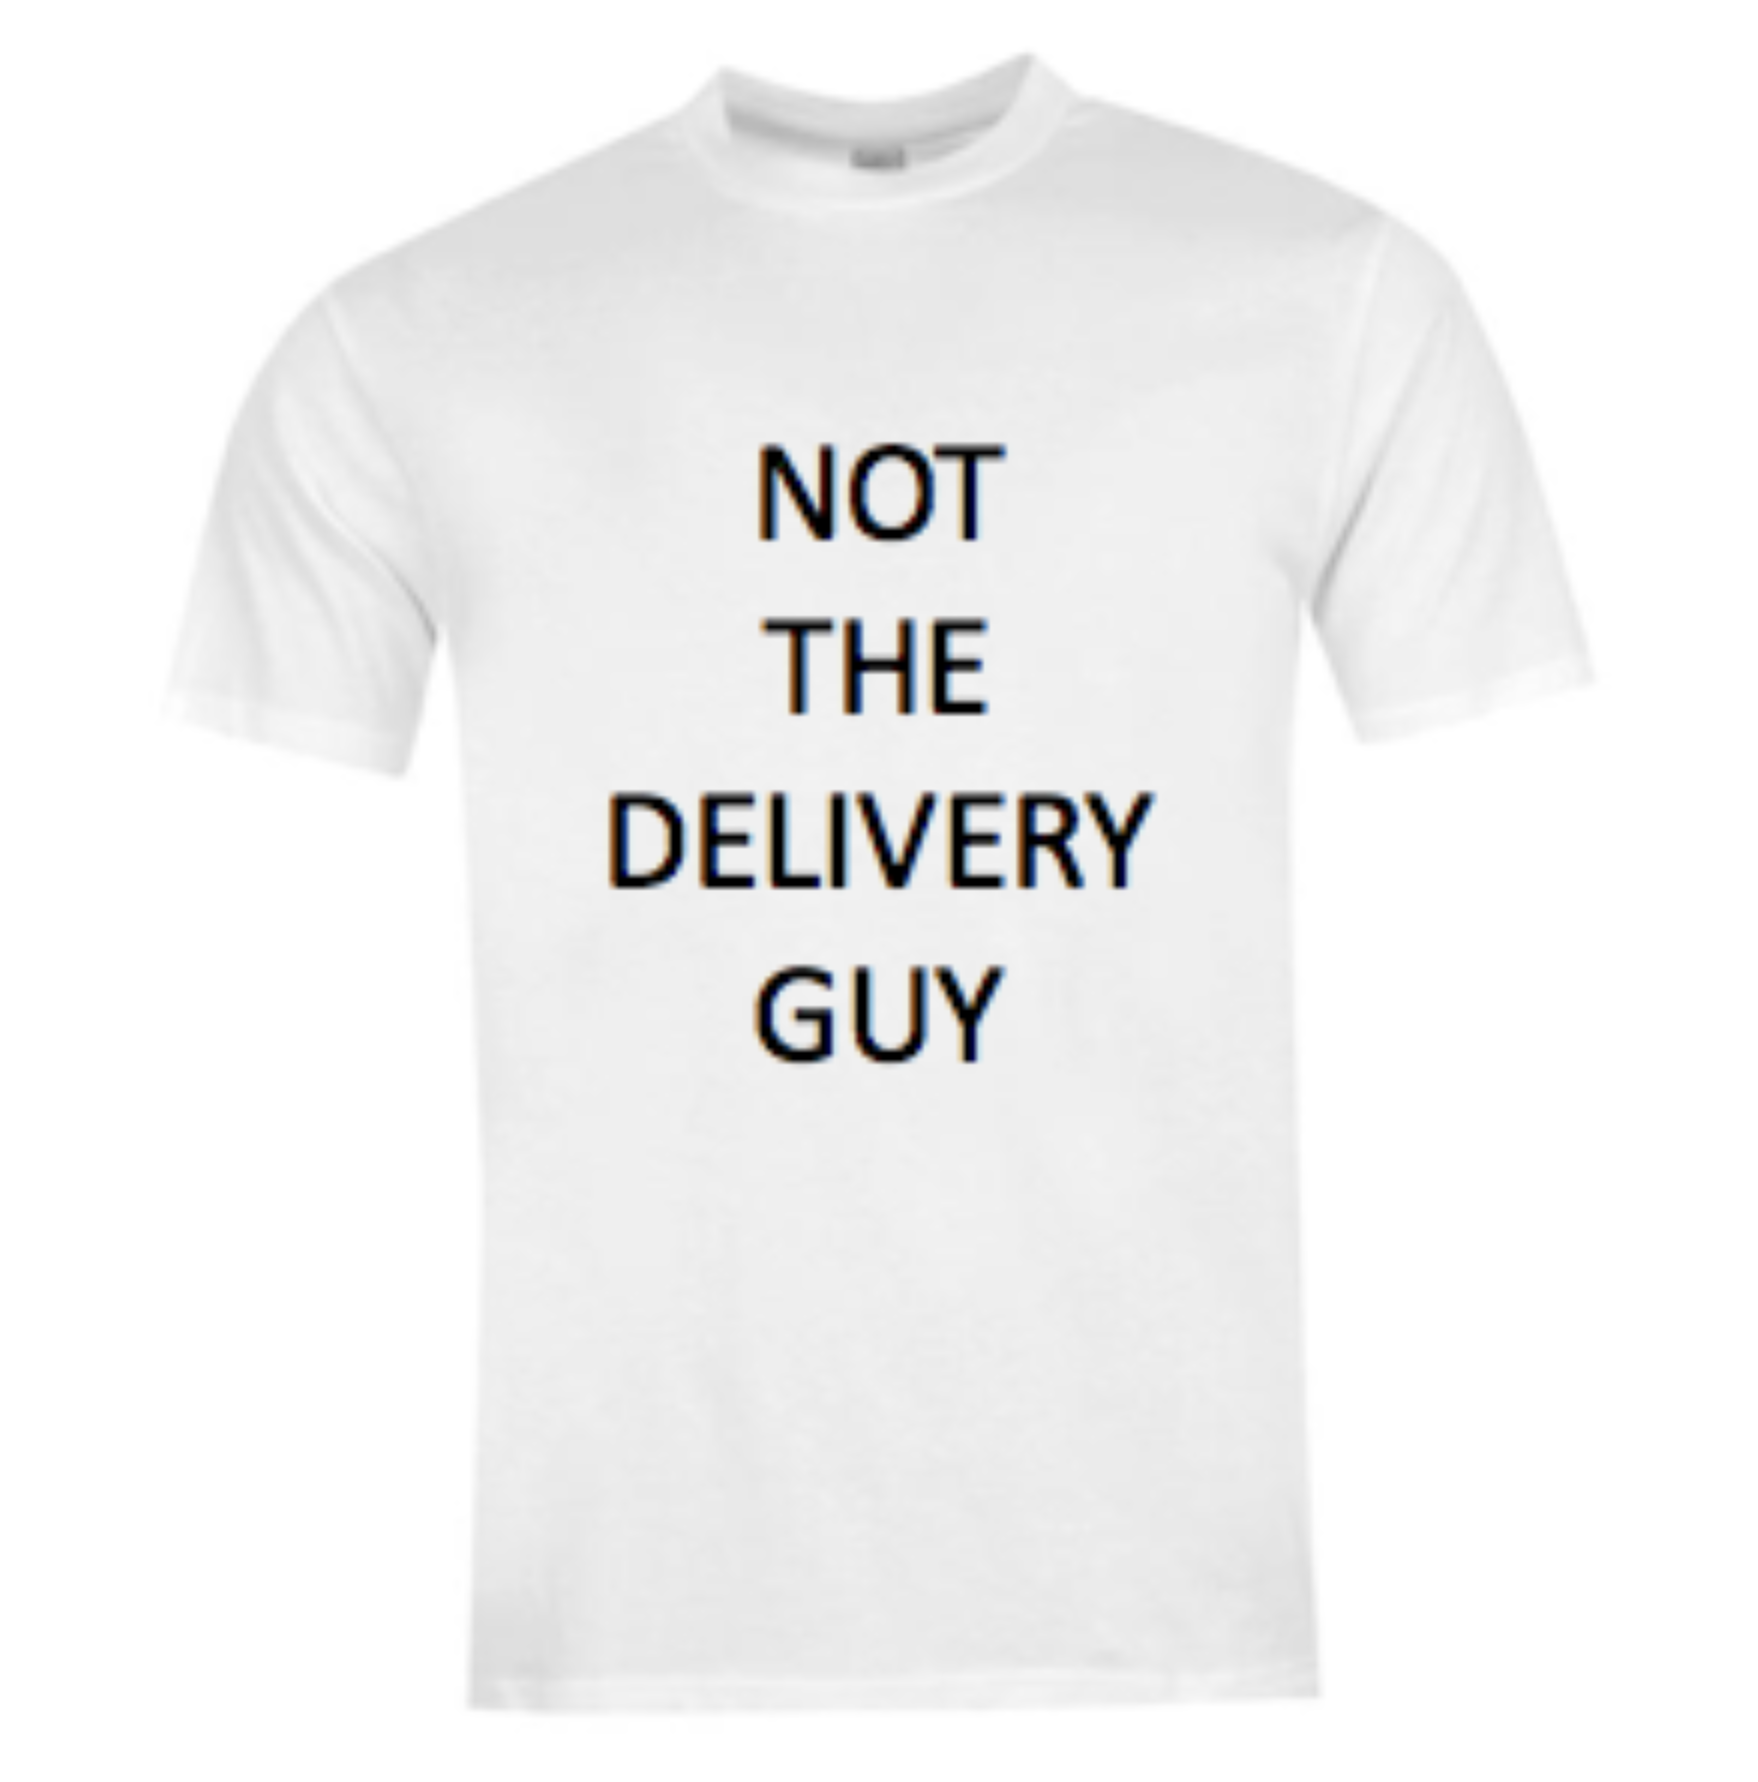 "Make Summer Fridays count with this minimalist graphic-tee that'll tell all your co-workers you're not the delivery guy, with the message ""Not The Delivery Guy""."